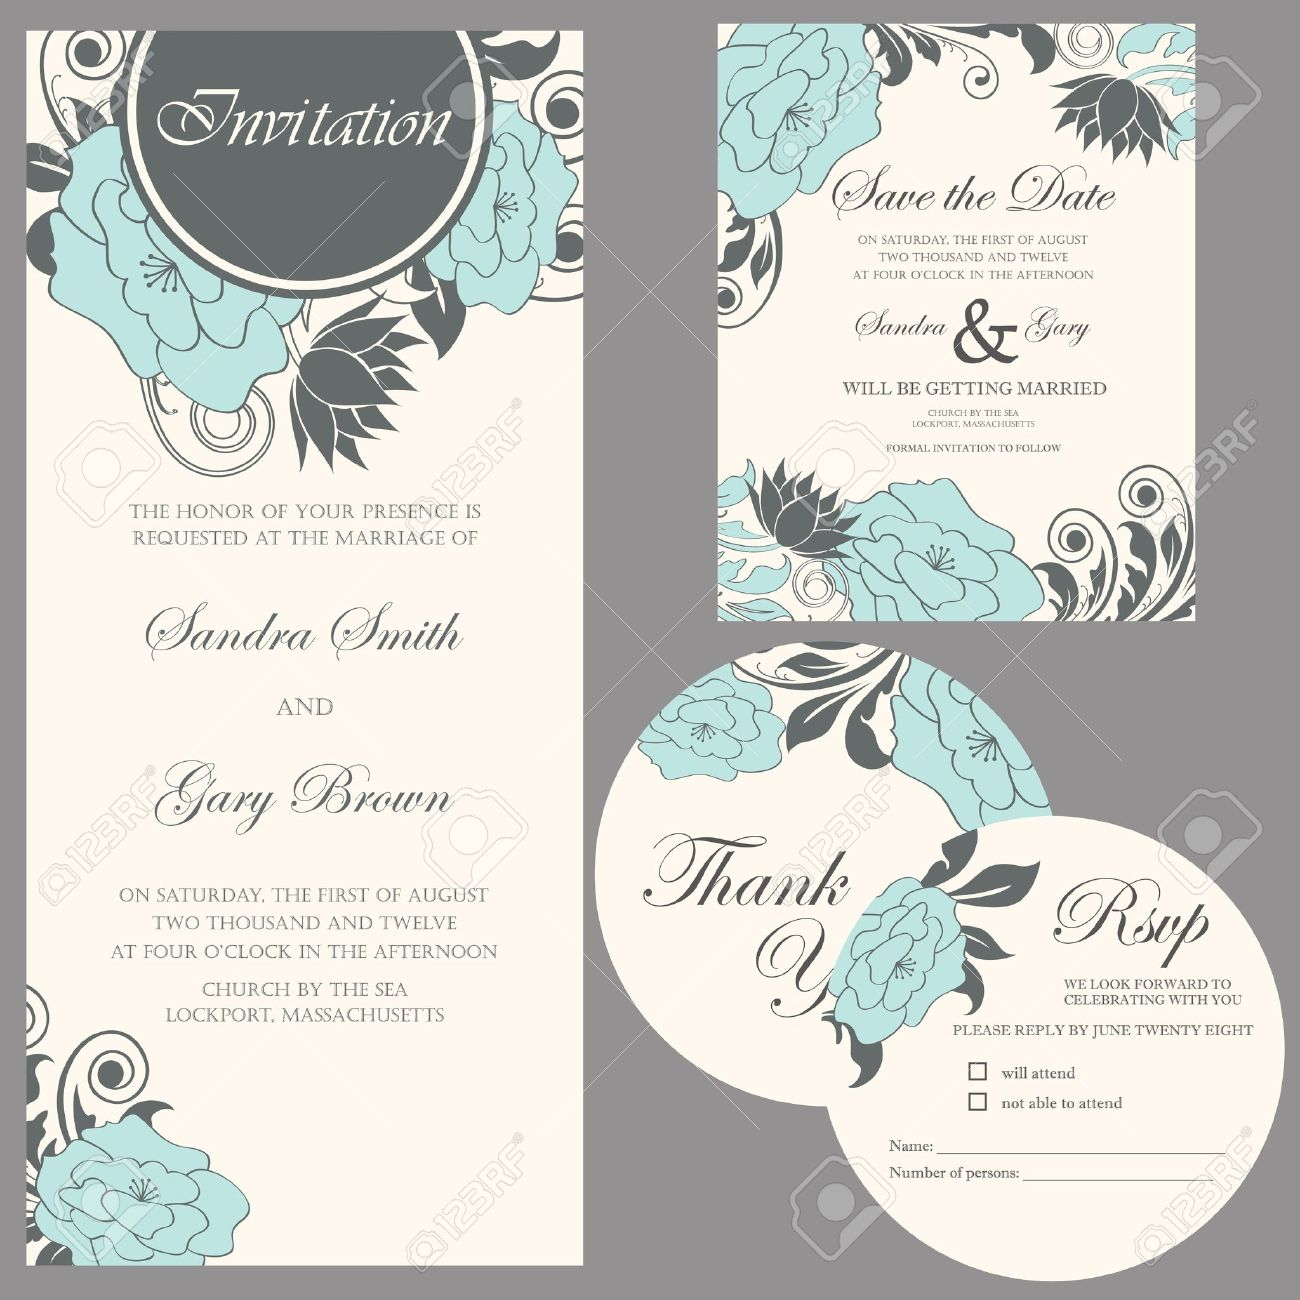 Wedding Invitation Set Thank You Card Save The Date Card RSVP – Invitation Card Rsvp